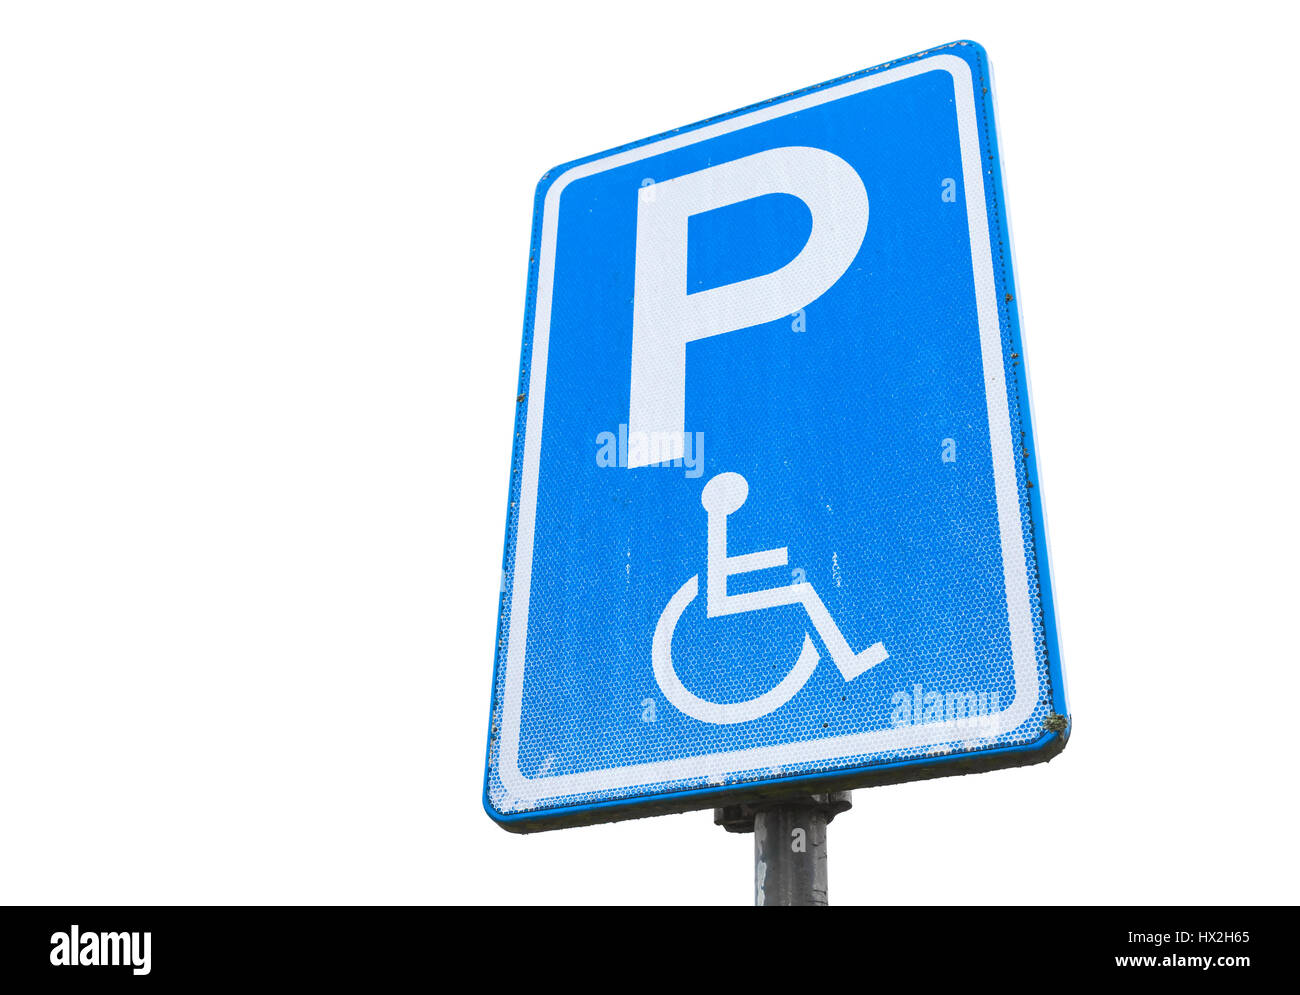 Disabled parking permit, blue road sign isolated on white background, close up photo - Stock Image